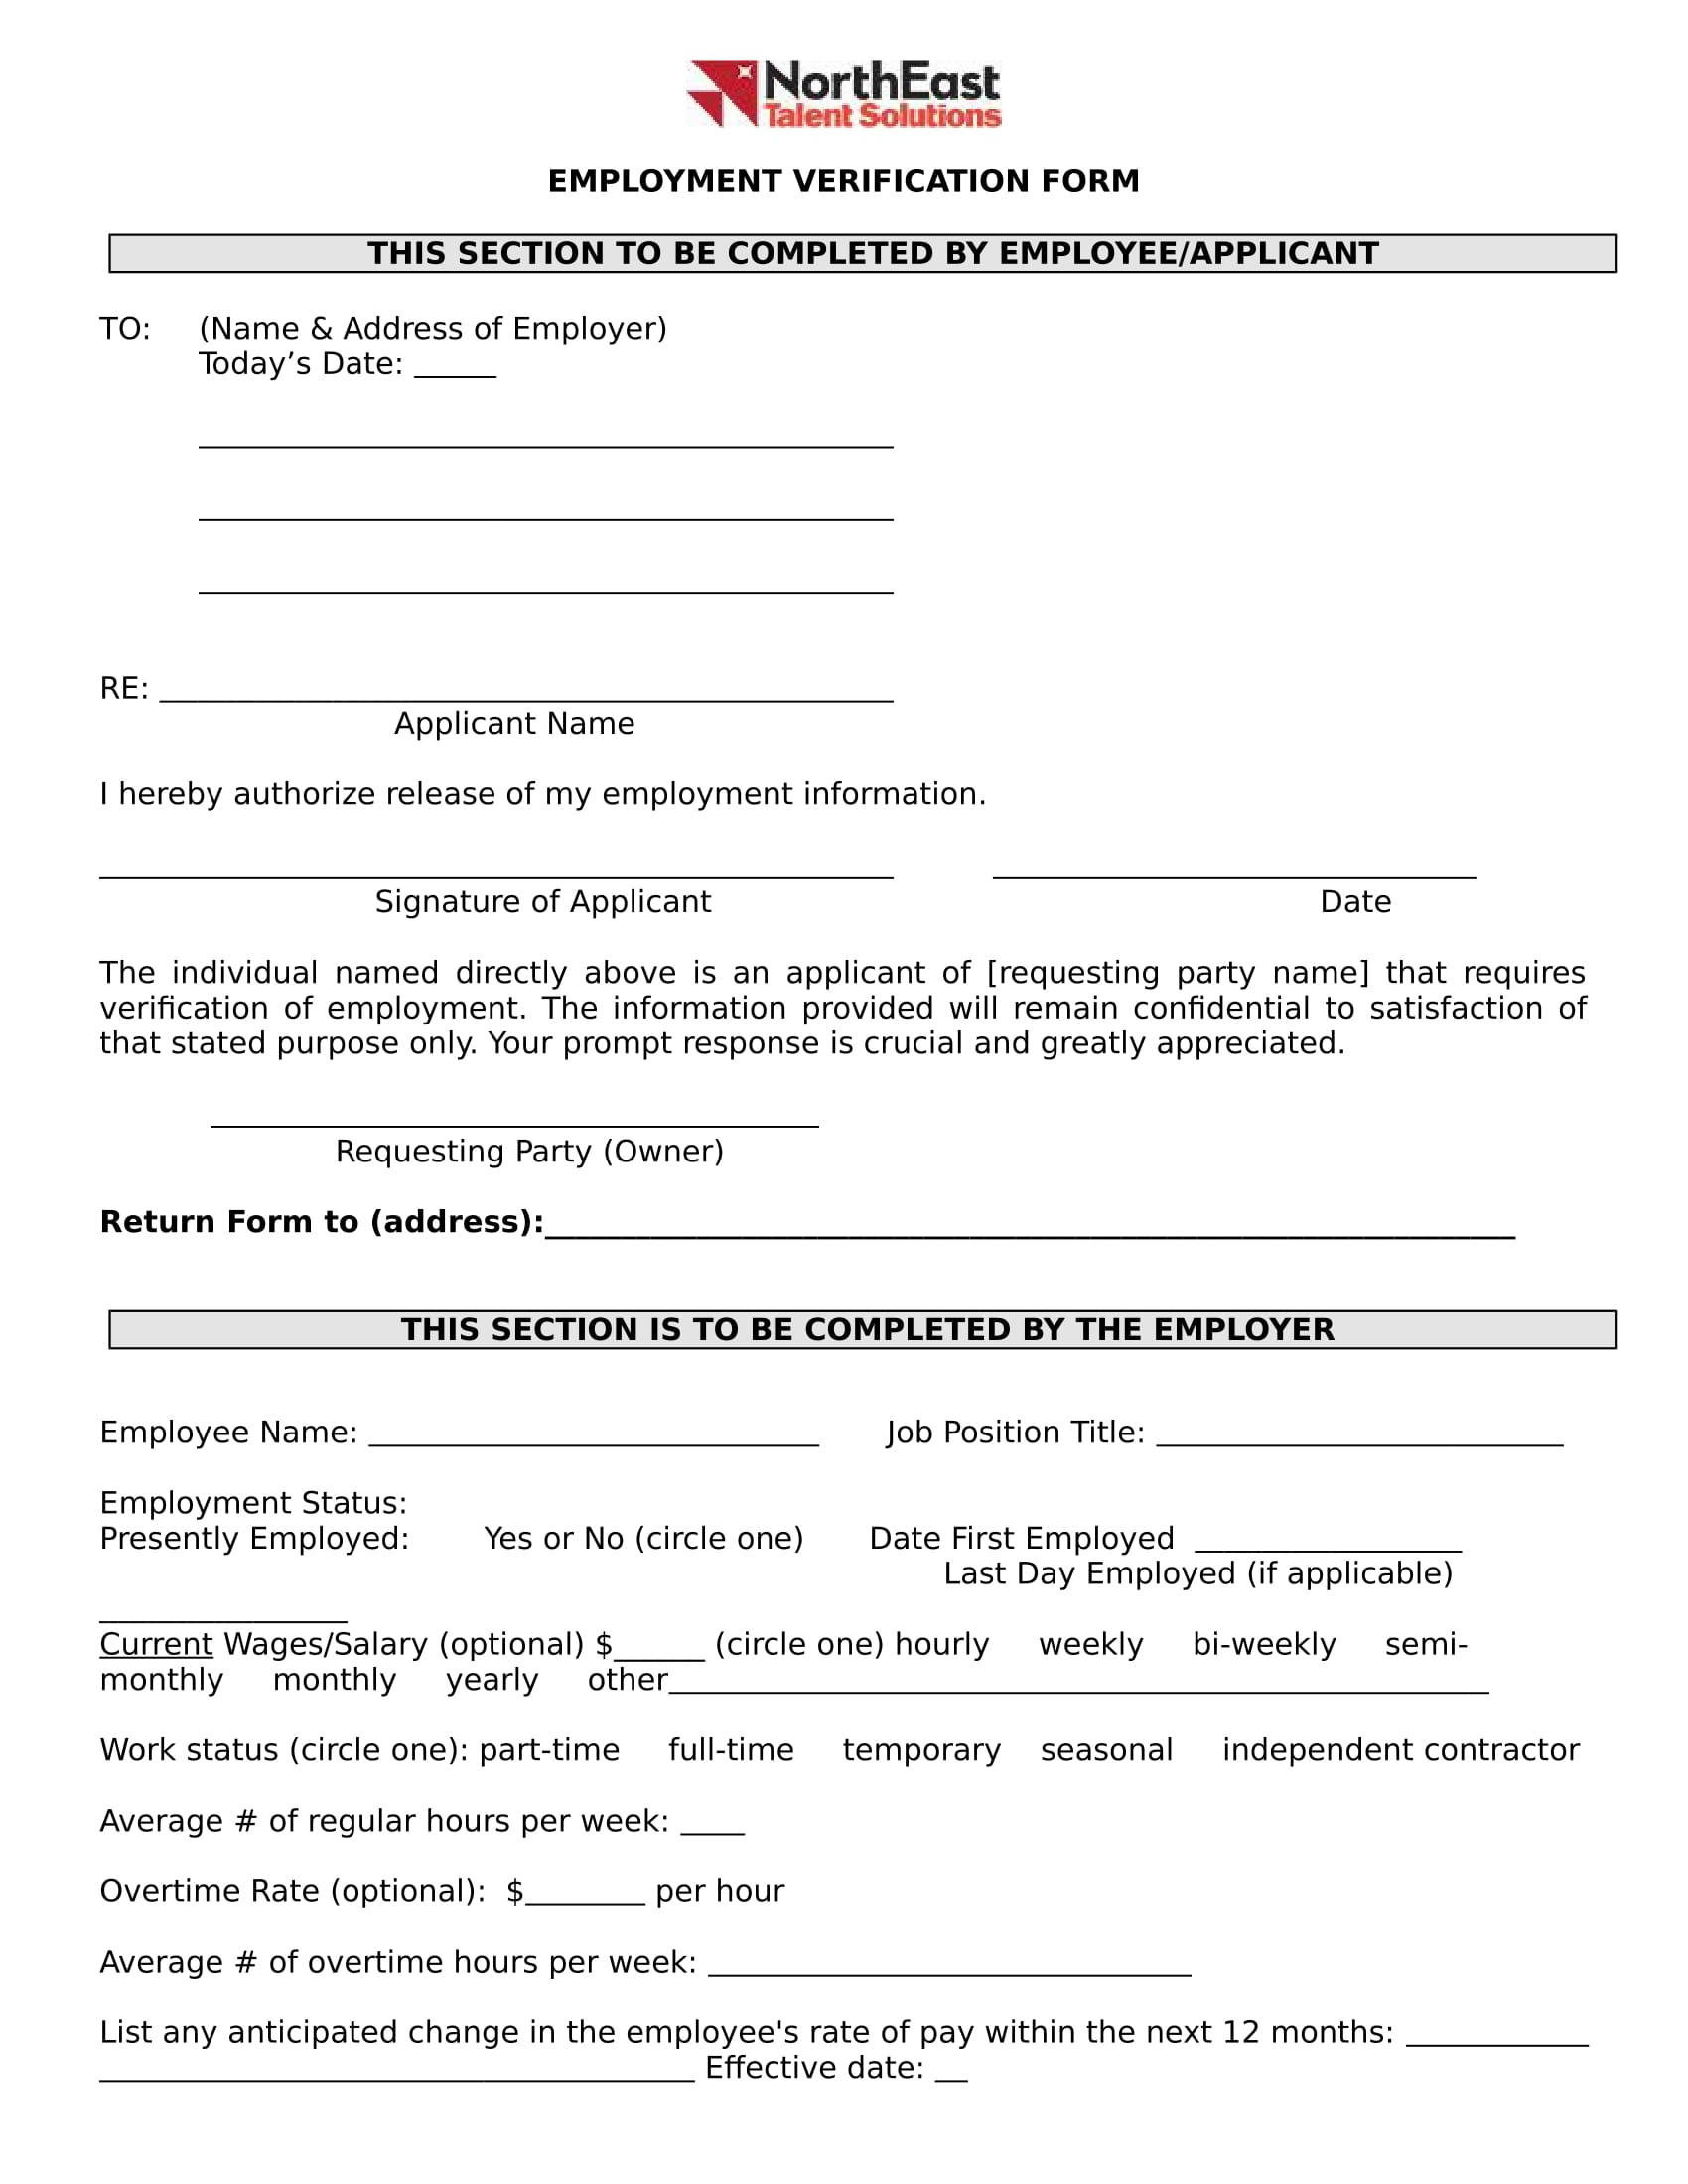 employment verification form in doc 1